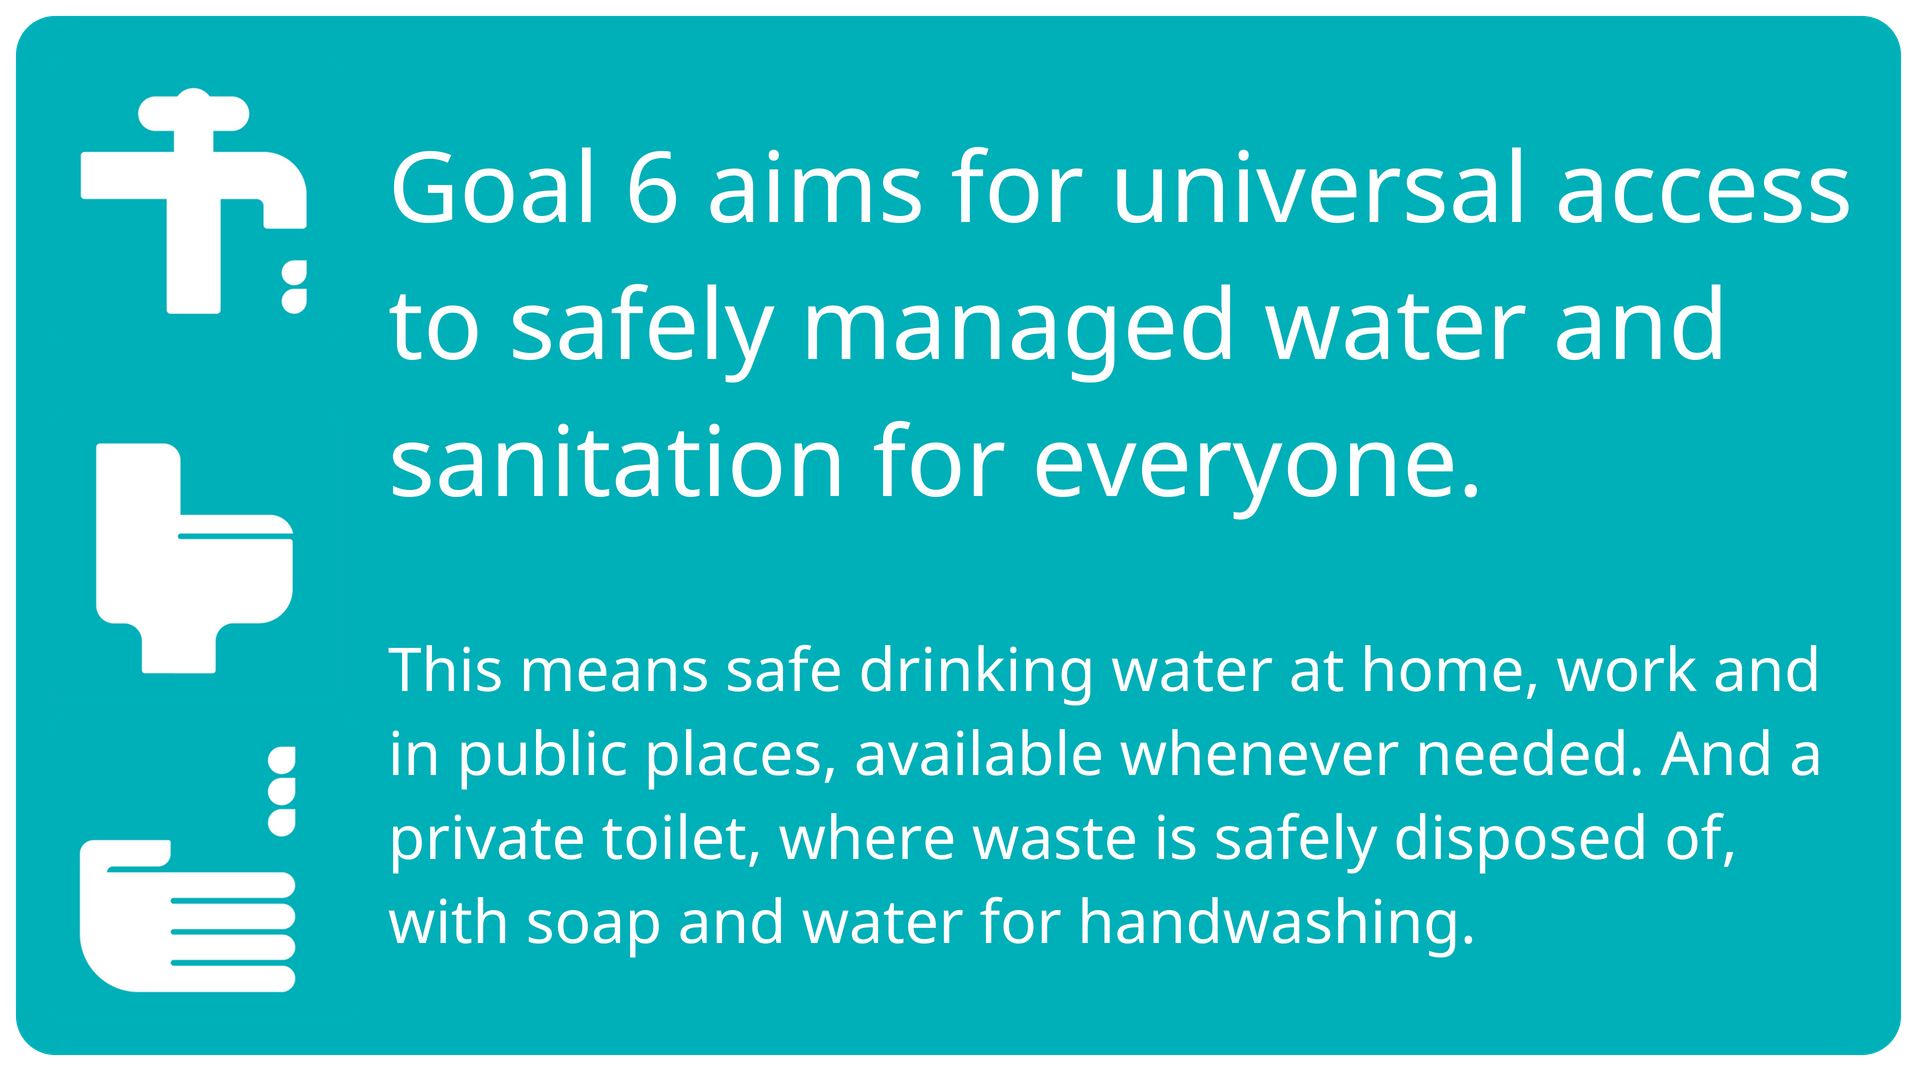 Goal 6 summary | WaterAid